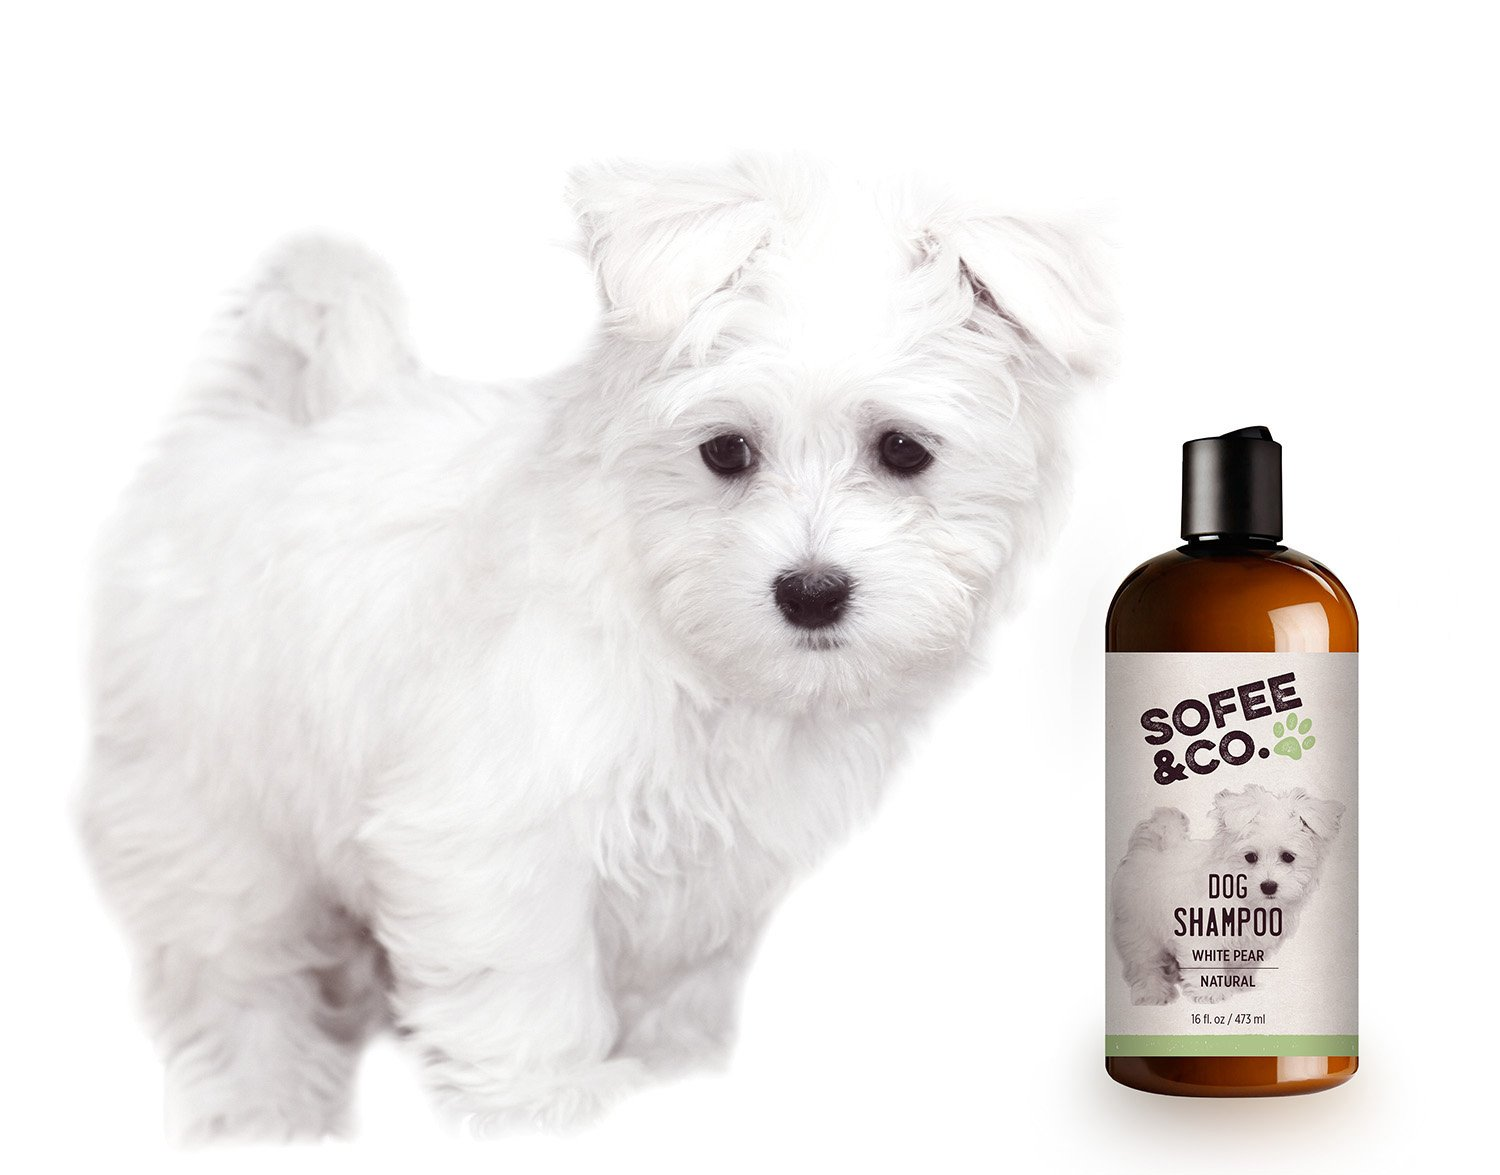 Sofee & Co. Natural Dog/Puppy Shampoo, White Pear - Clean, Moisturize, Deodorize, Detangle, Calm, Soothe, Soften, Normal, Dry, Itchy, Allergy, Sensitive Skin. Prevent Mattes. 16 oz by Sofee & Co. (Image #5)